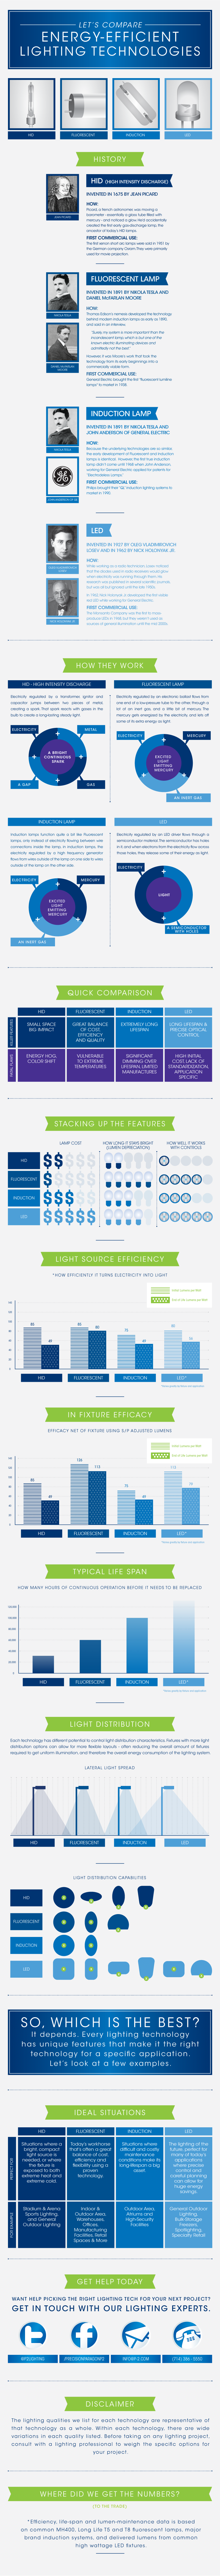 Energy-Efficient-Lighting-Technologies-infographic